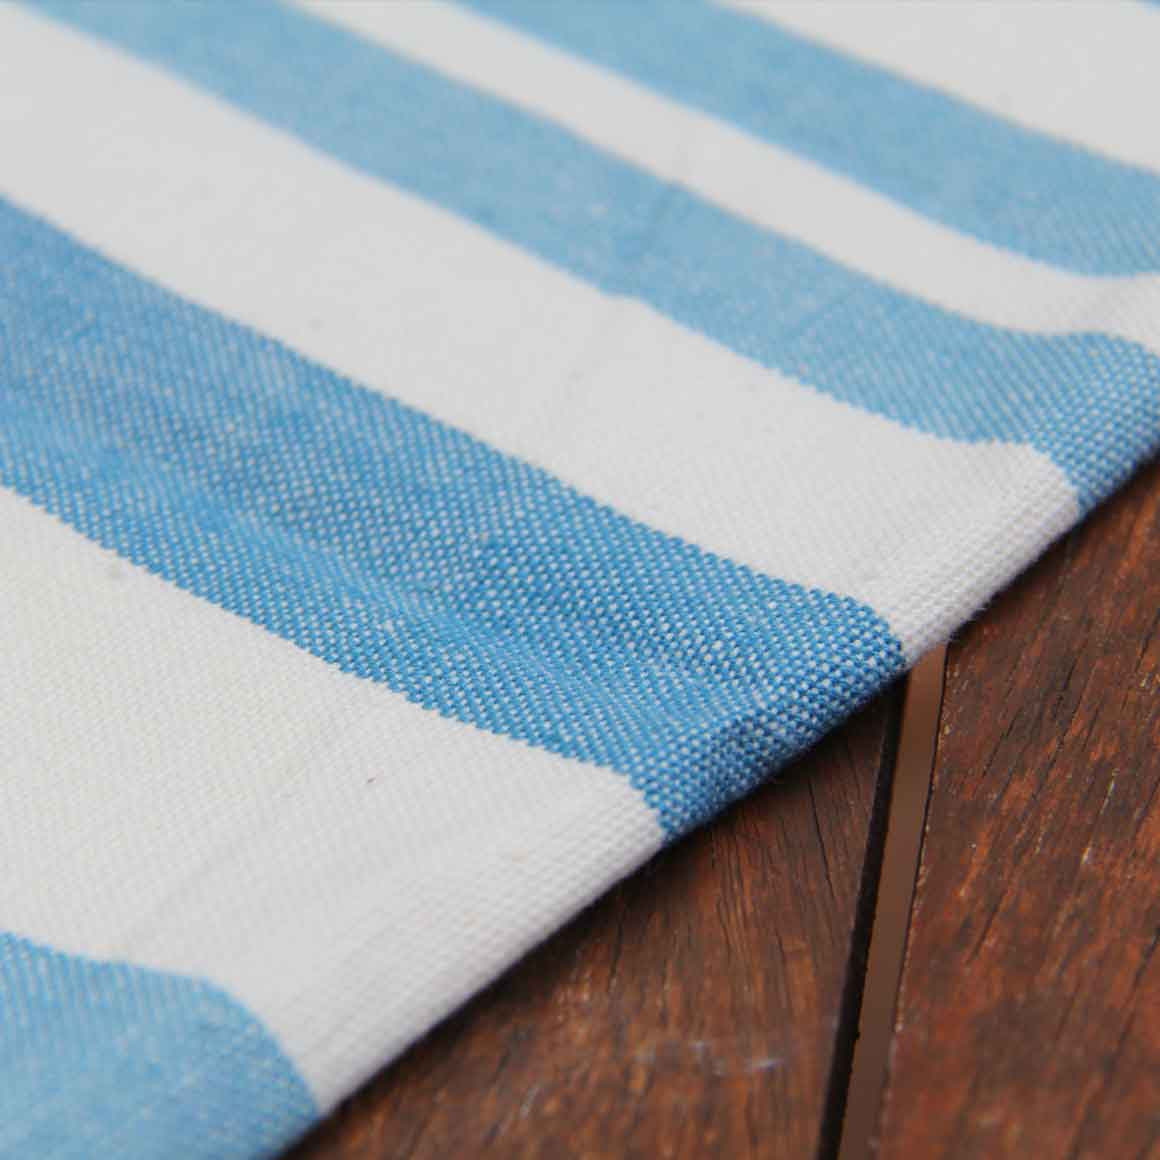 Fair Trade Ethical 100% Cotton Tea Towels